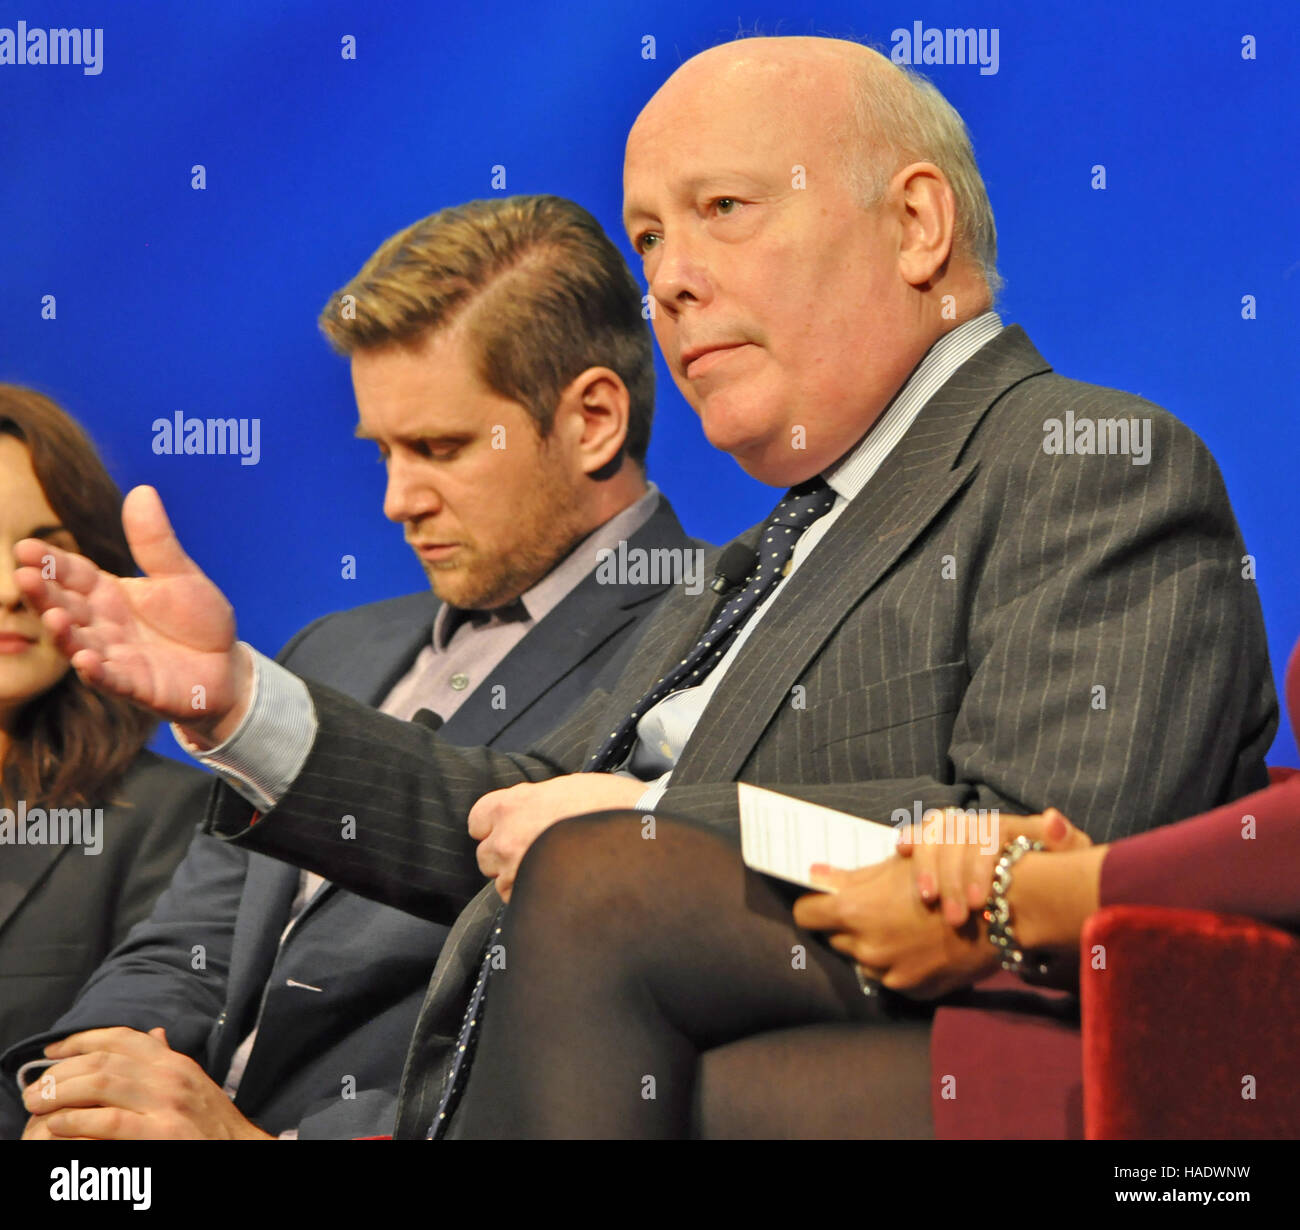 NY, NY. December 8 2015.  Allen Leech and Julian Fellowes at the 'Downtown Abbey' PBS panel. © Veronica - Stock Image